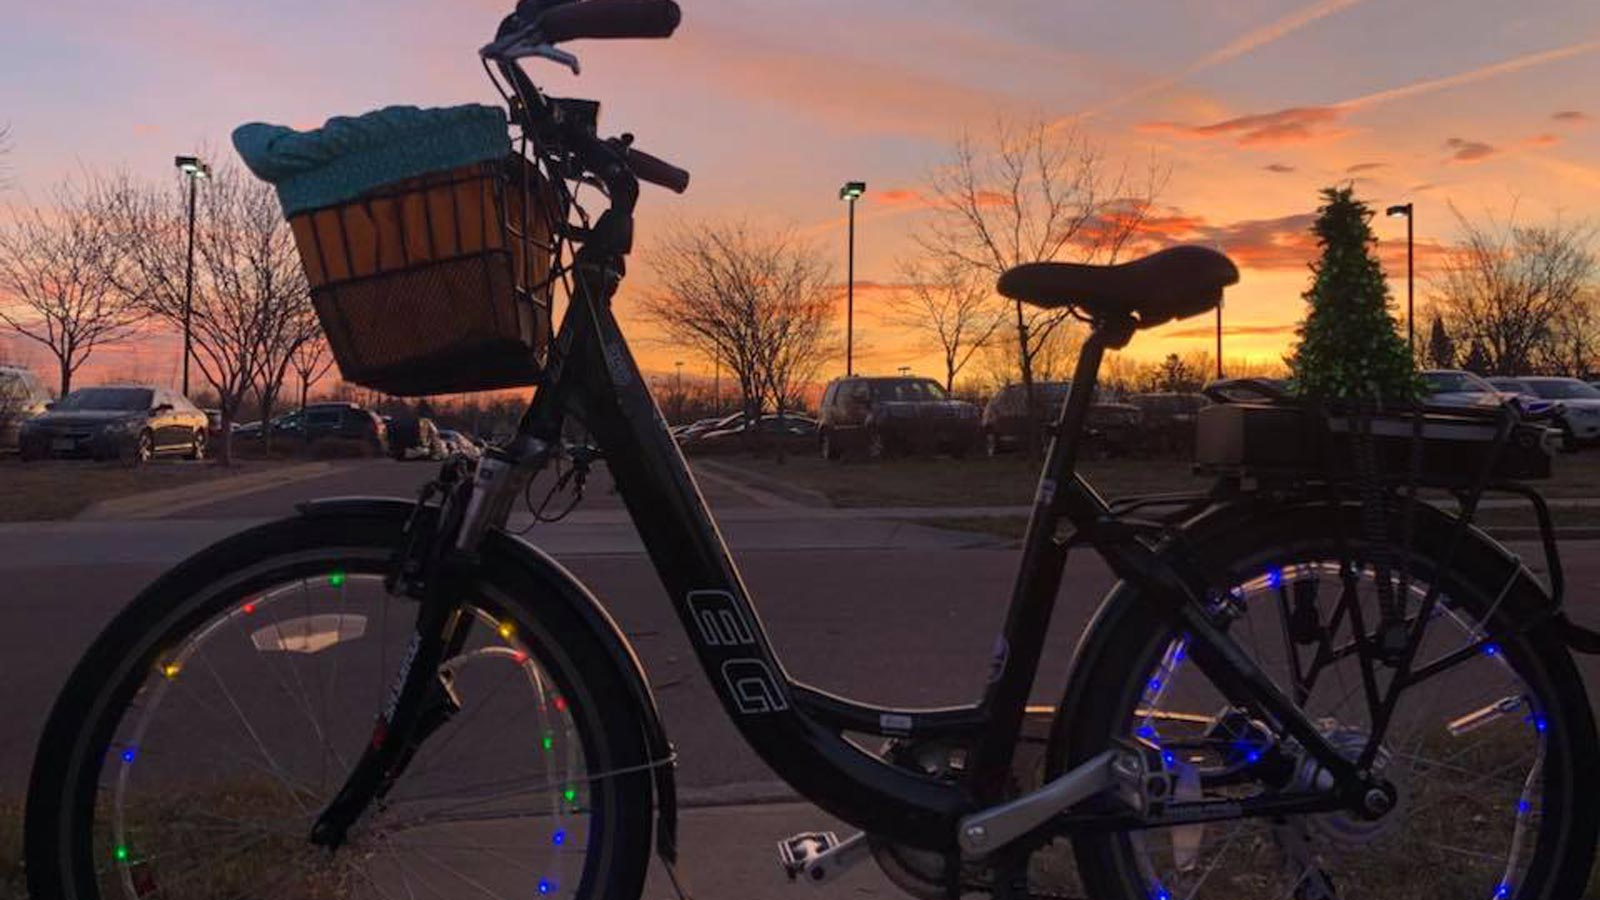 New Ebike Ordinance Is Not Just About Ebikes